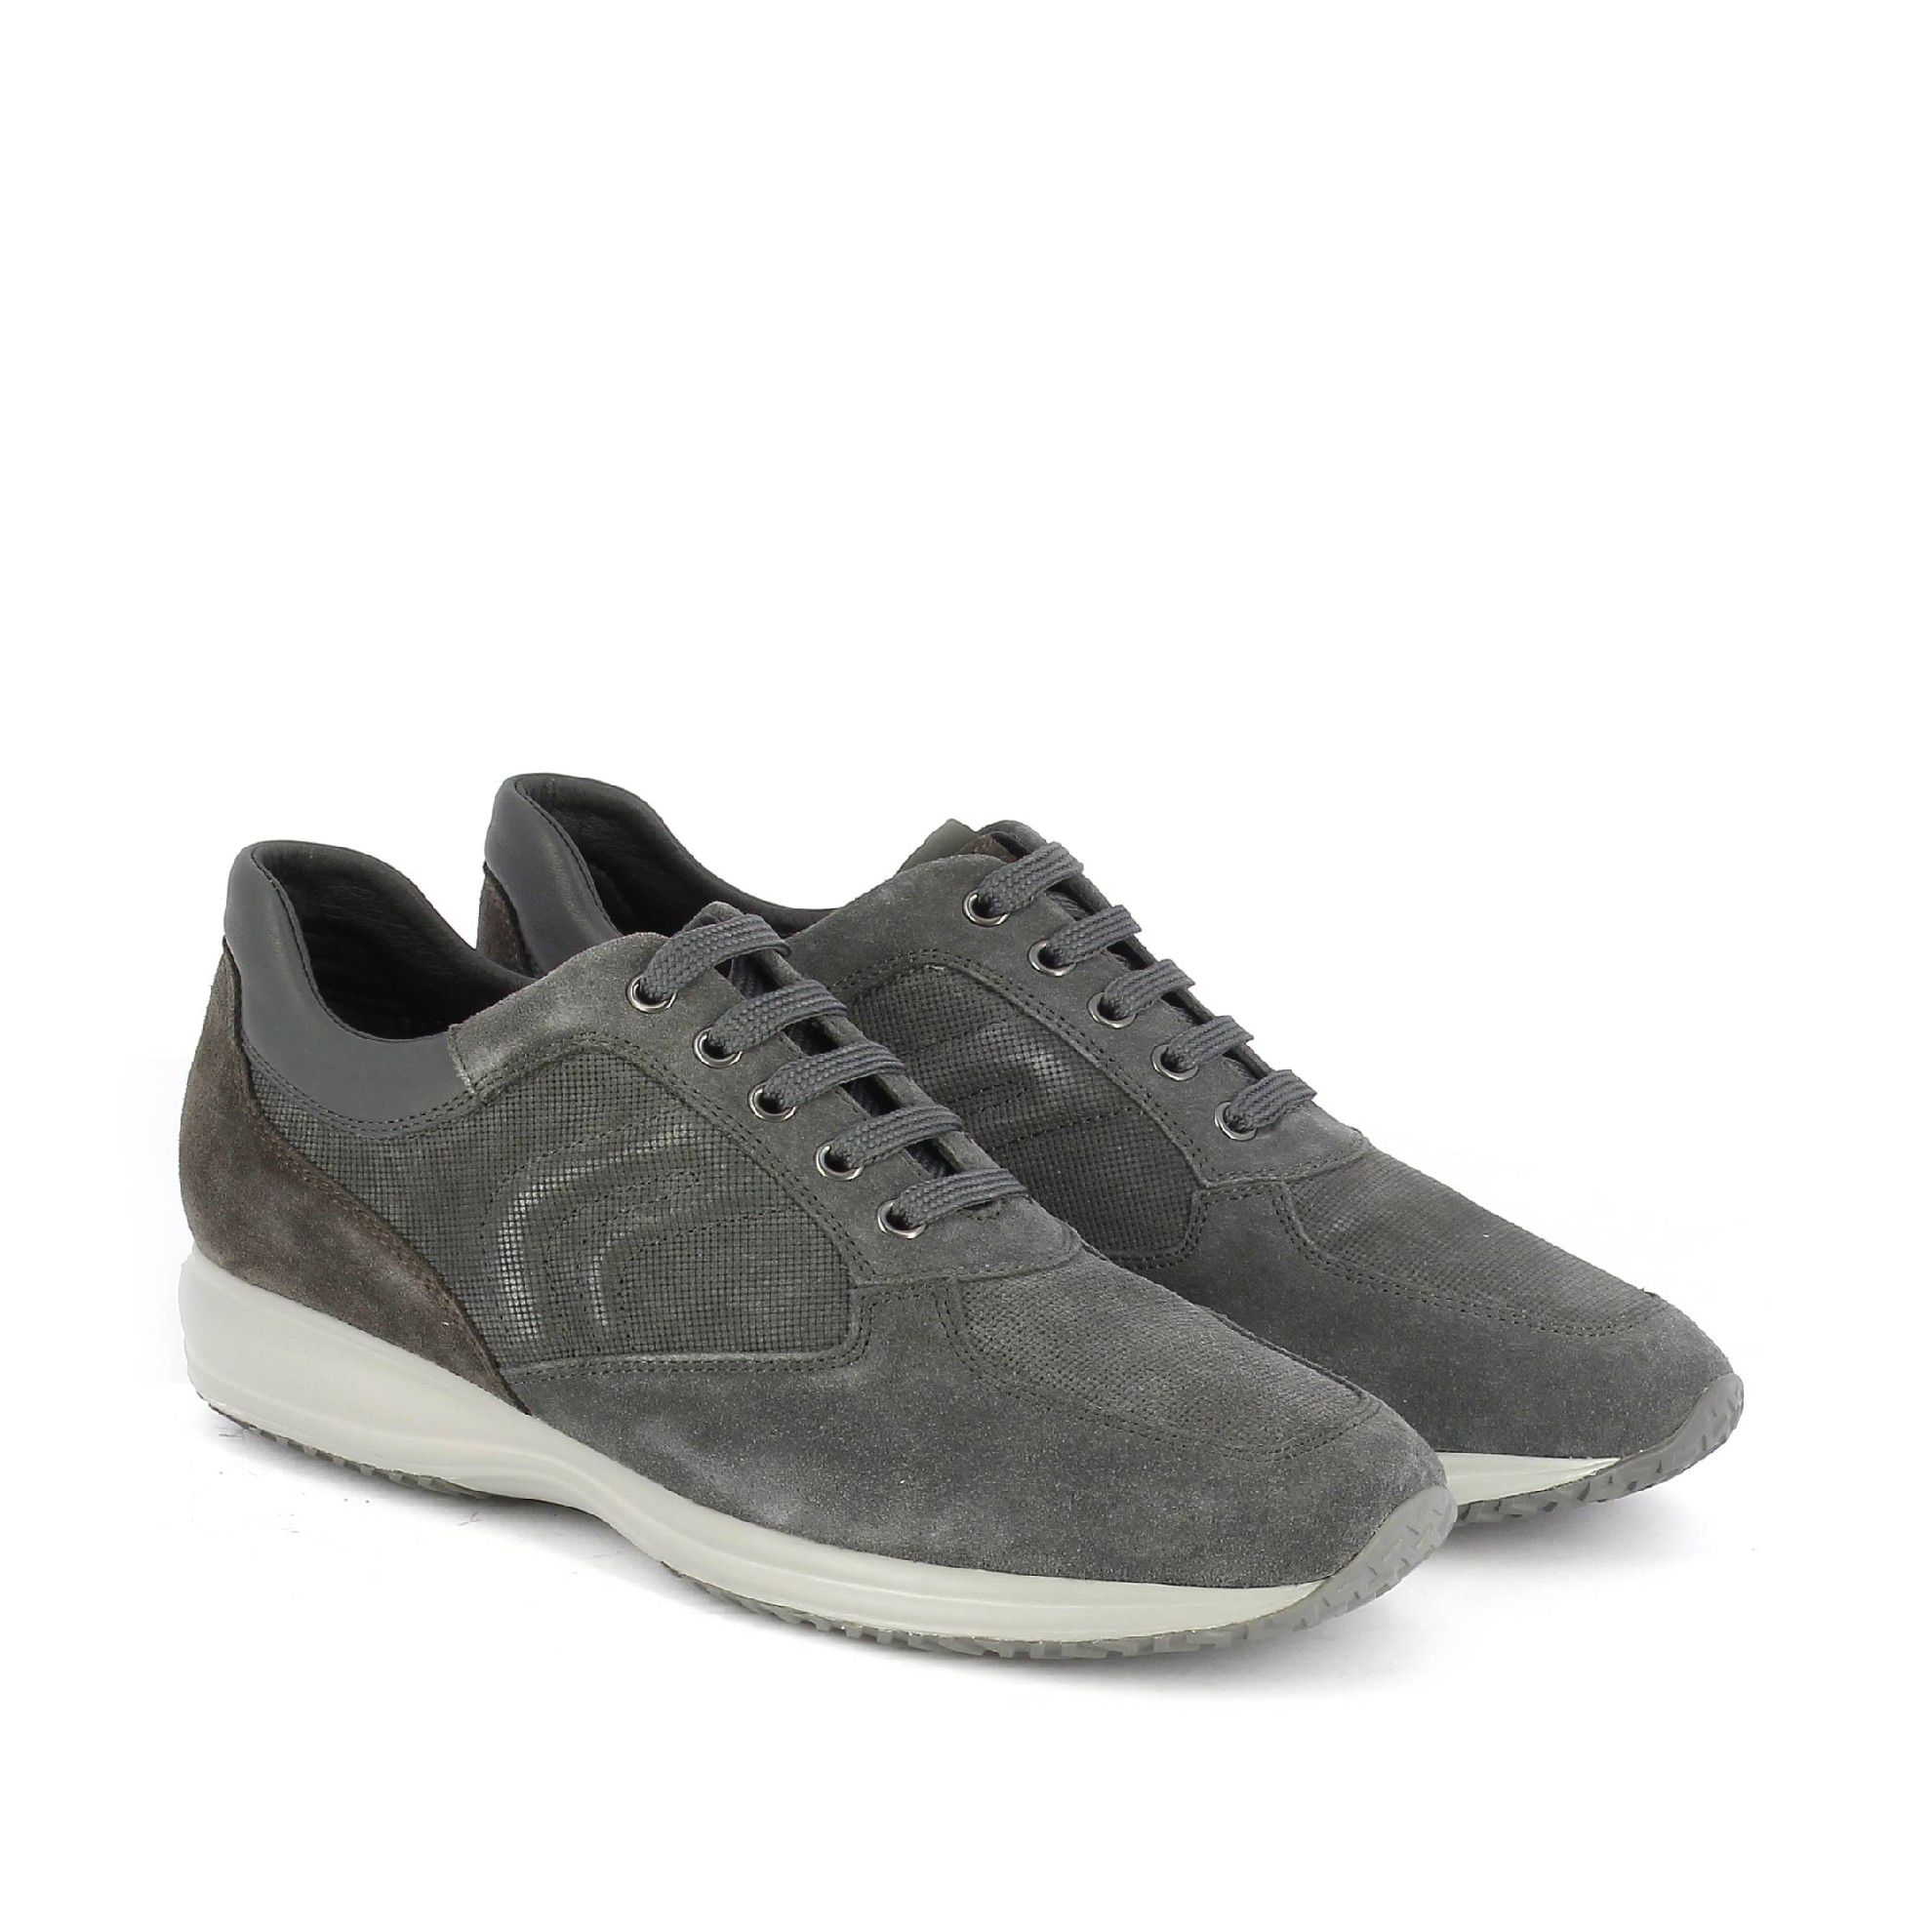 Geox sneaker happy h in suede da uomo